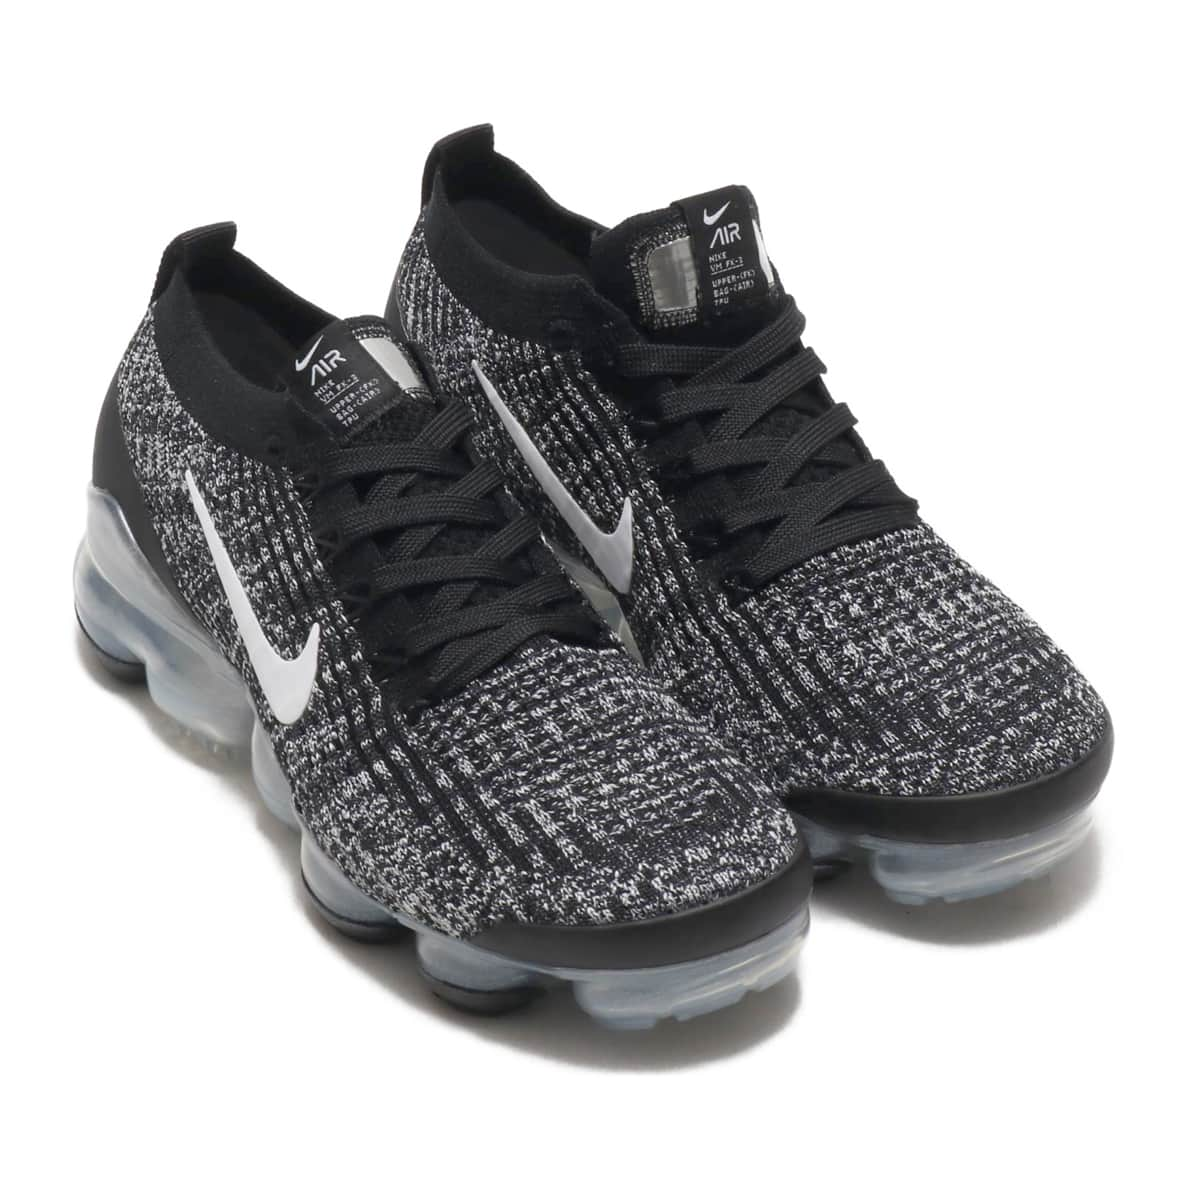 NIKE W AIR VAPORMAX FLYKNIT 3 BLACK/WHITE-MTLC SILVER 19SU-S_photo_large